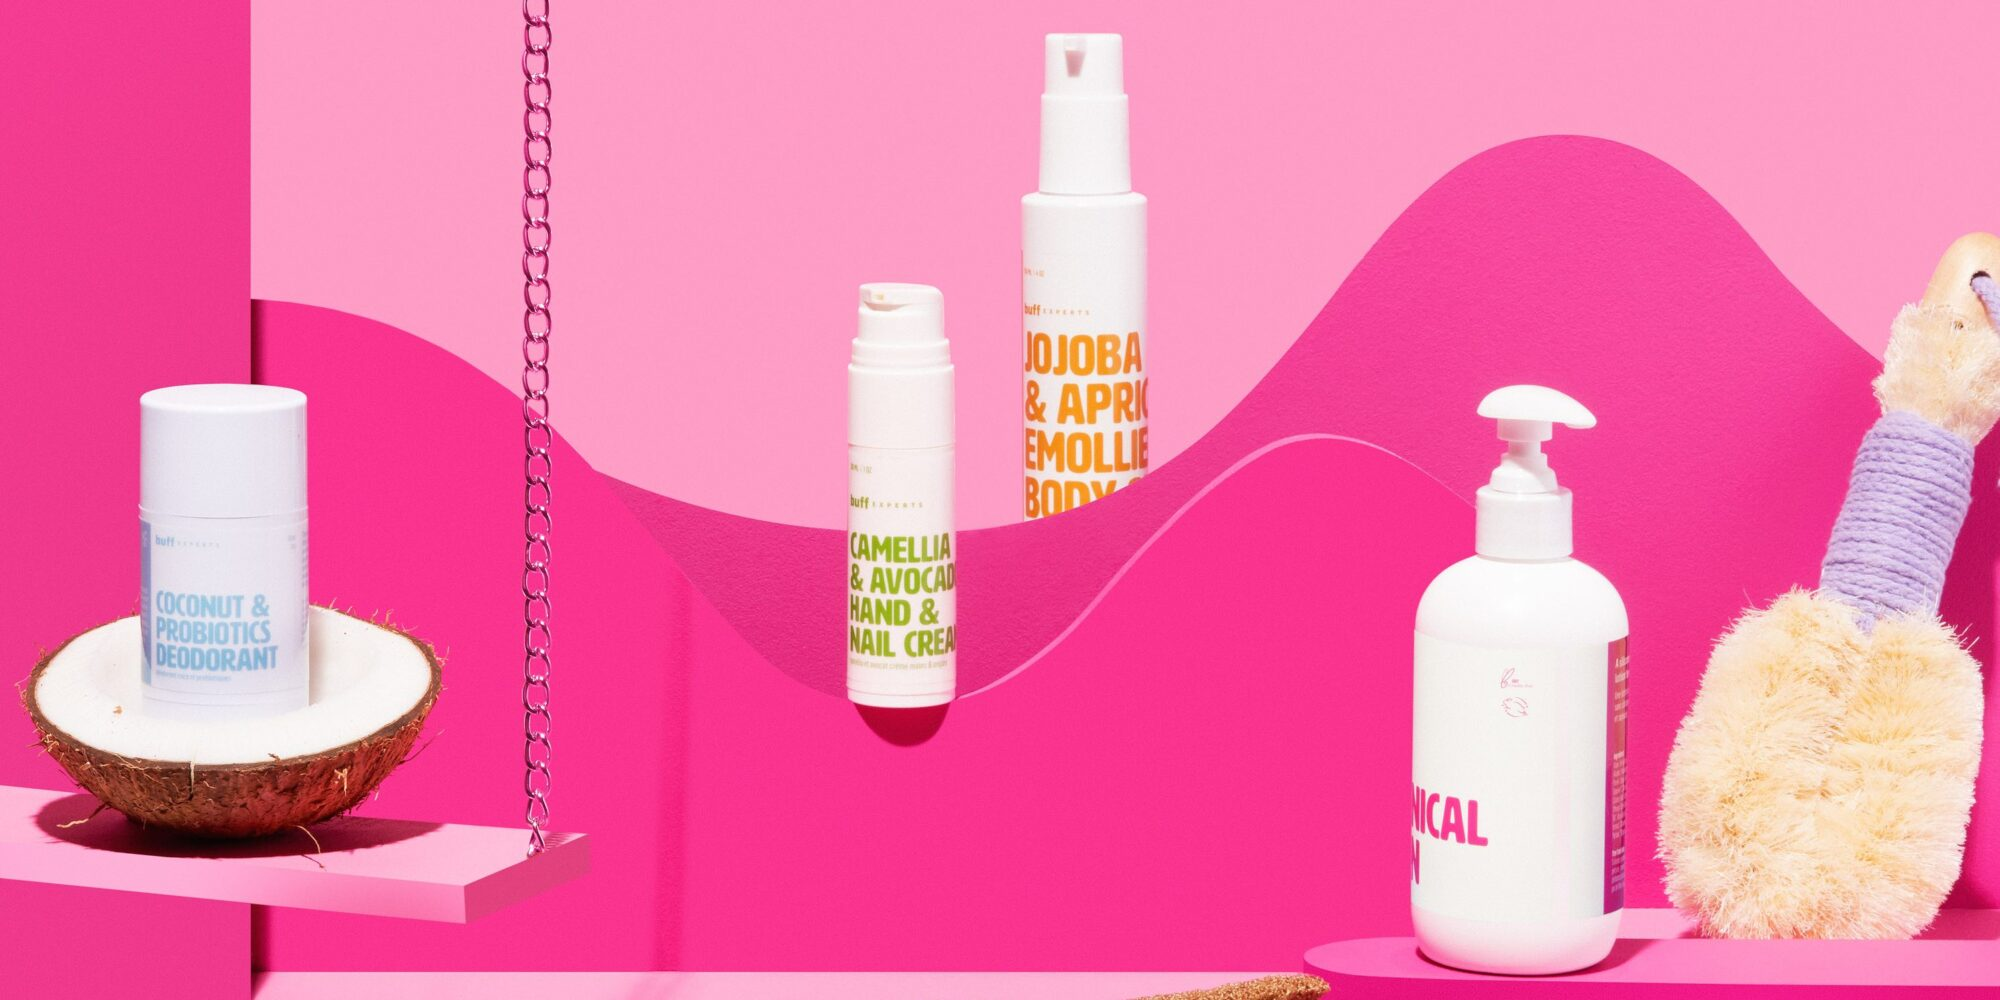 This Brand Carried By Nordstrom Makes Bold Body Care That's Anything But An Afterthought